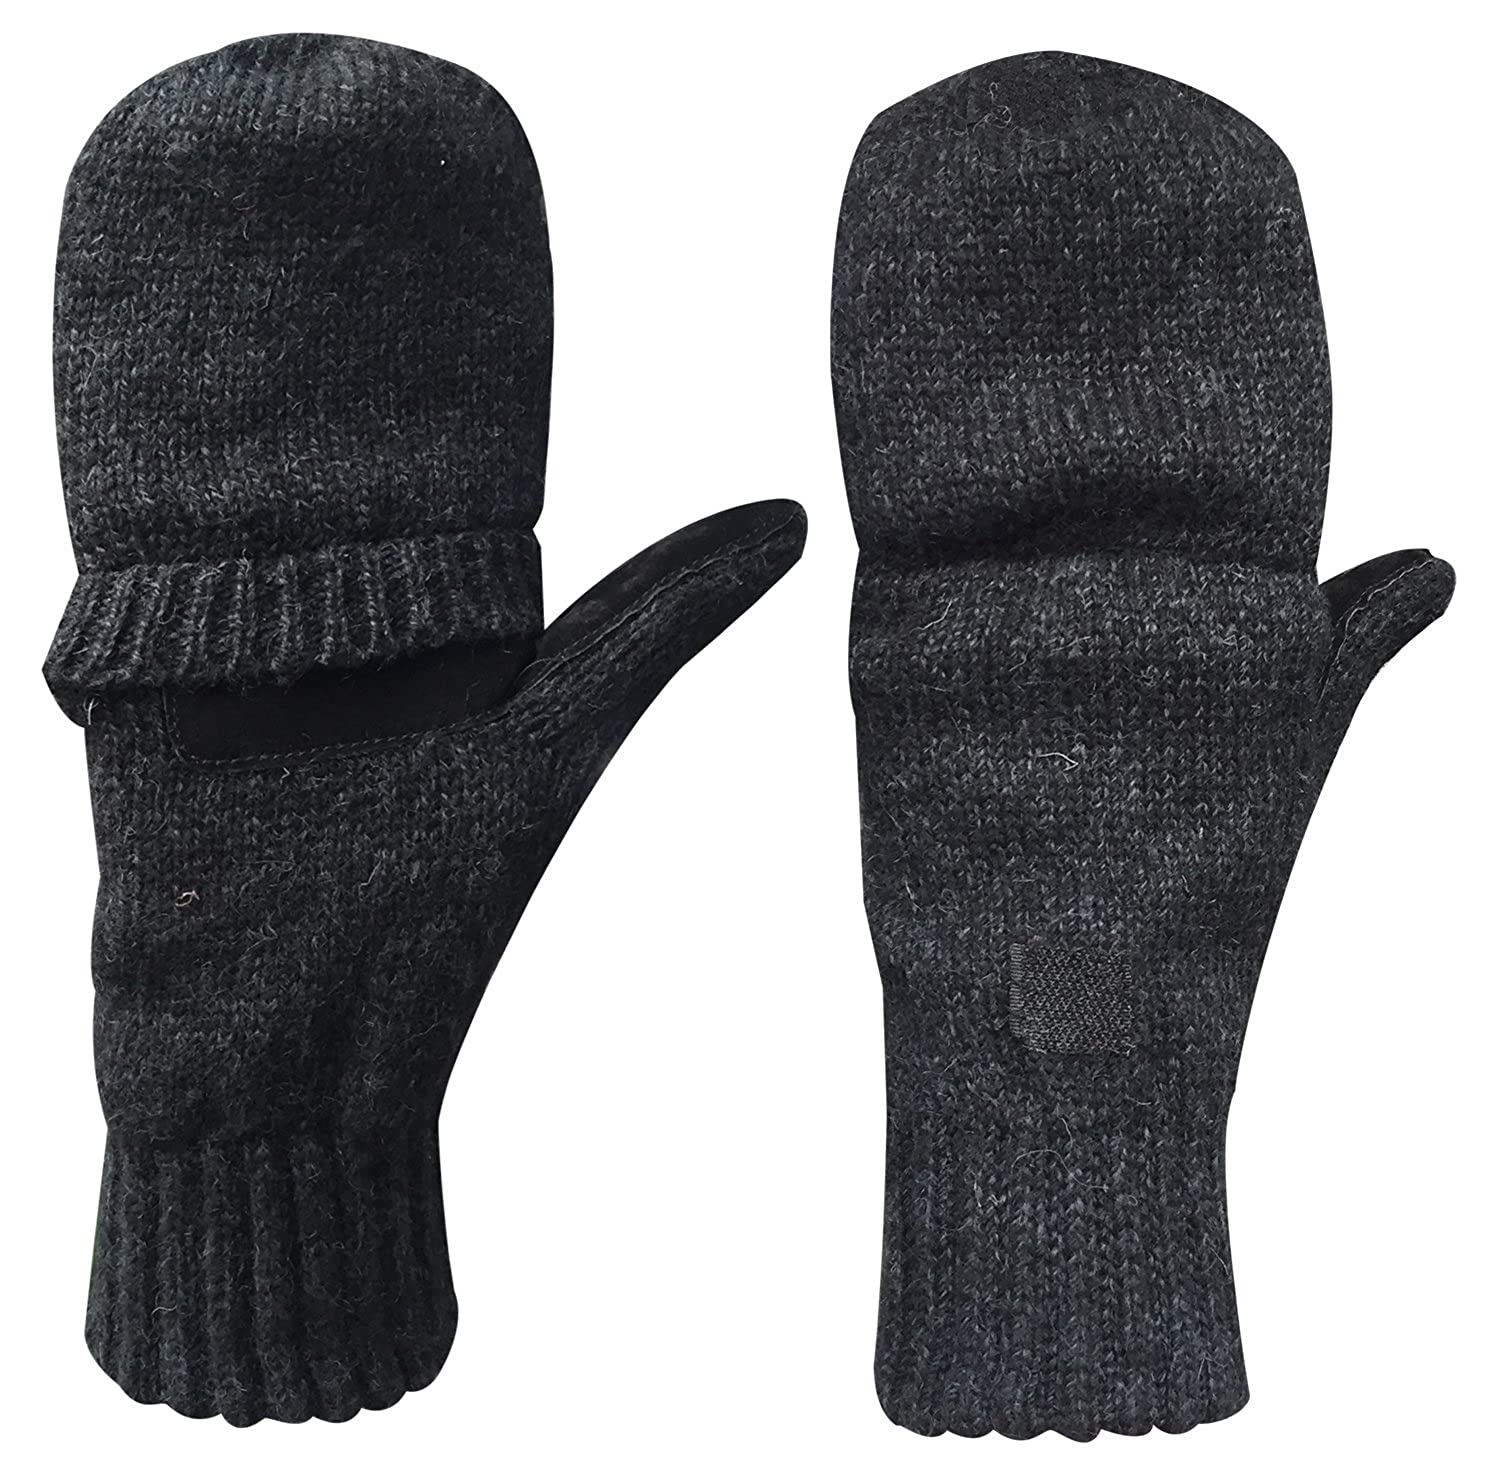 Fingerless gloves cotton - Korlon Warm Winter Wool Knitted Convertible Gloves Mittens With Mitten Cover Black At Amazon Men S Clothing Store